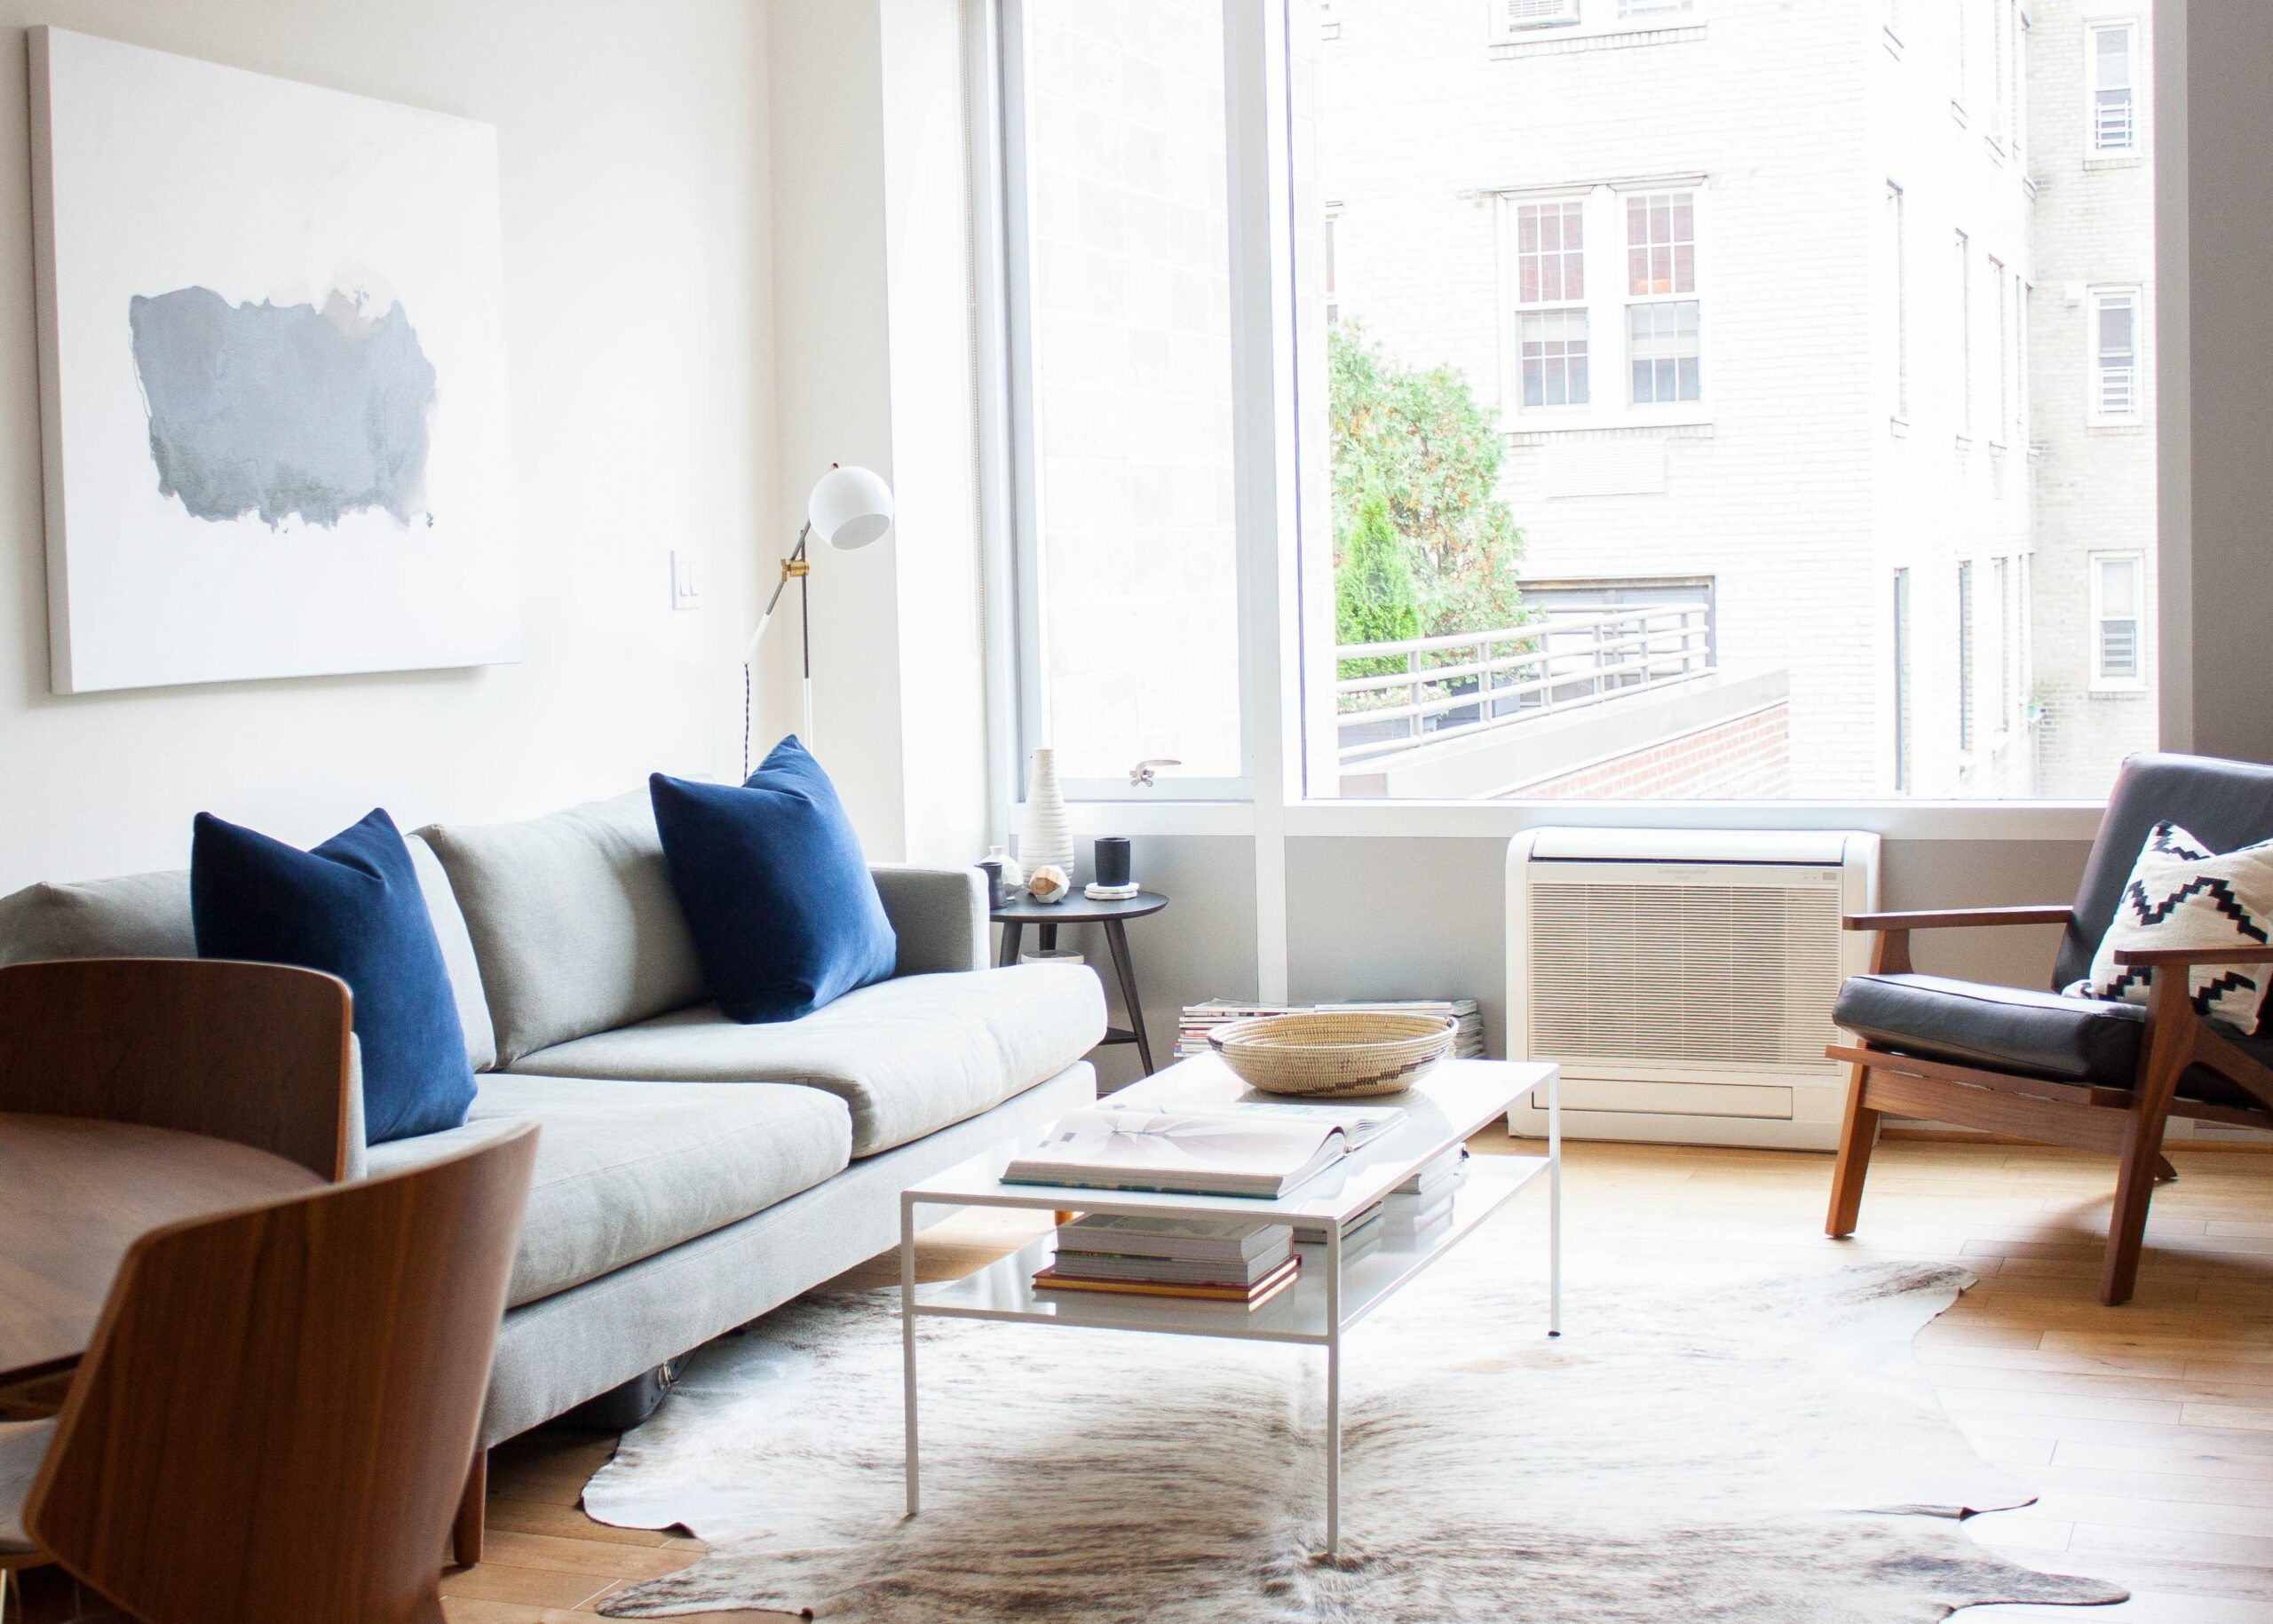 12 Small Living Room Decorating & Design Ideas - How to Decorate a ...